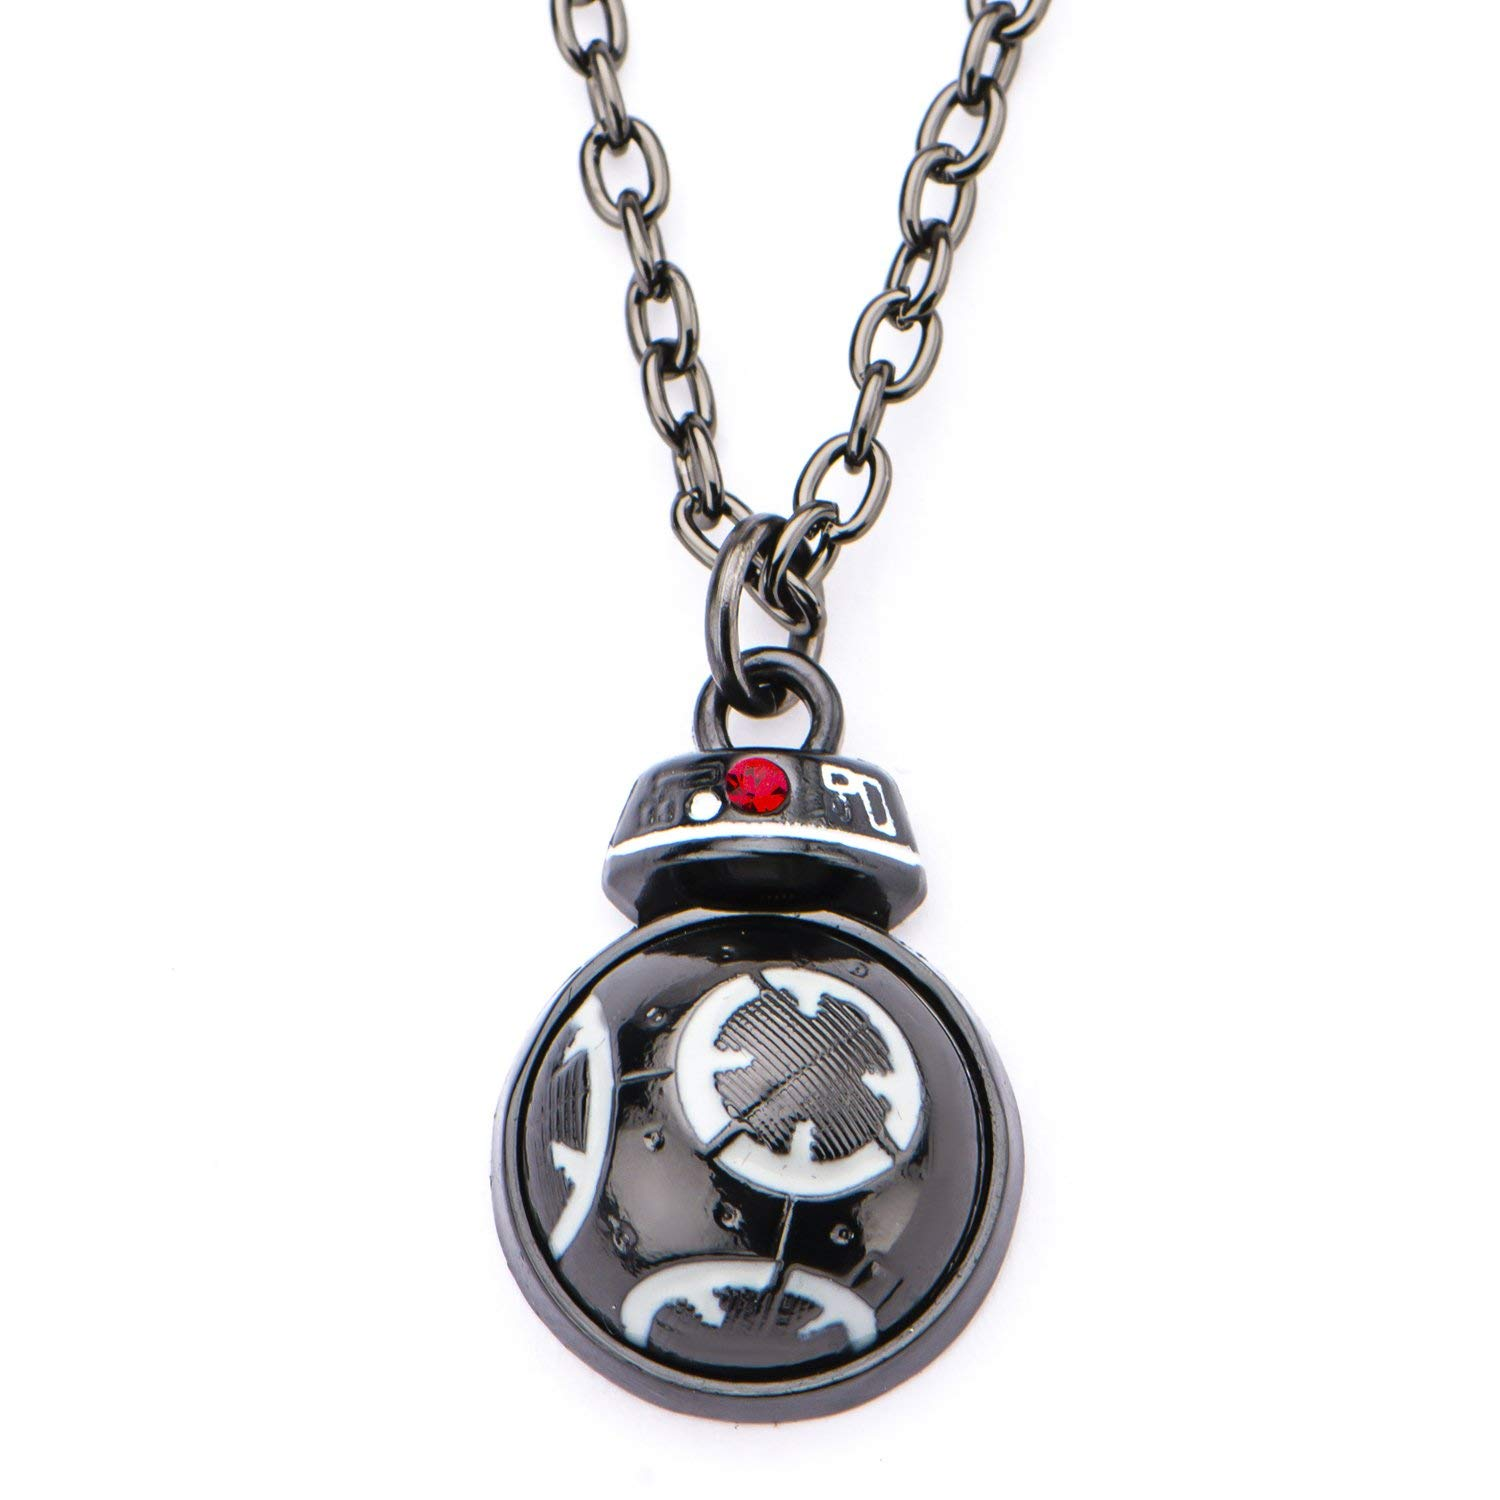 Body Vibe x Star Wars BB-9E Necklace on Amazon